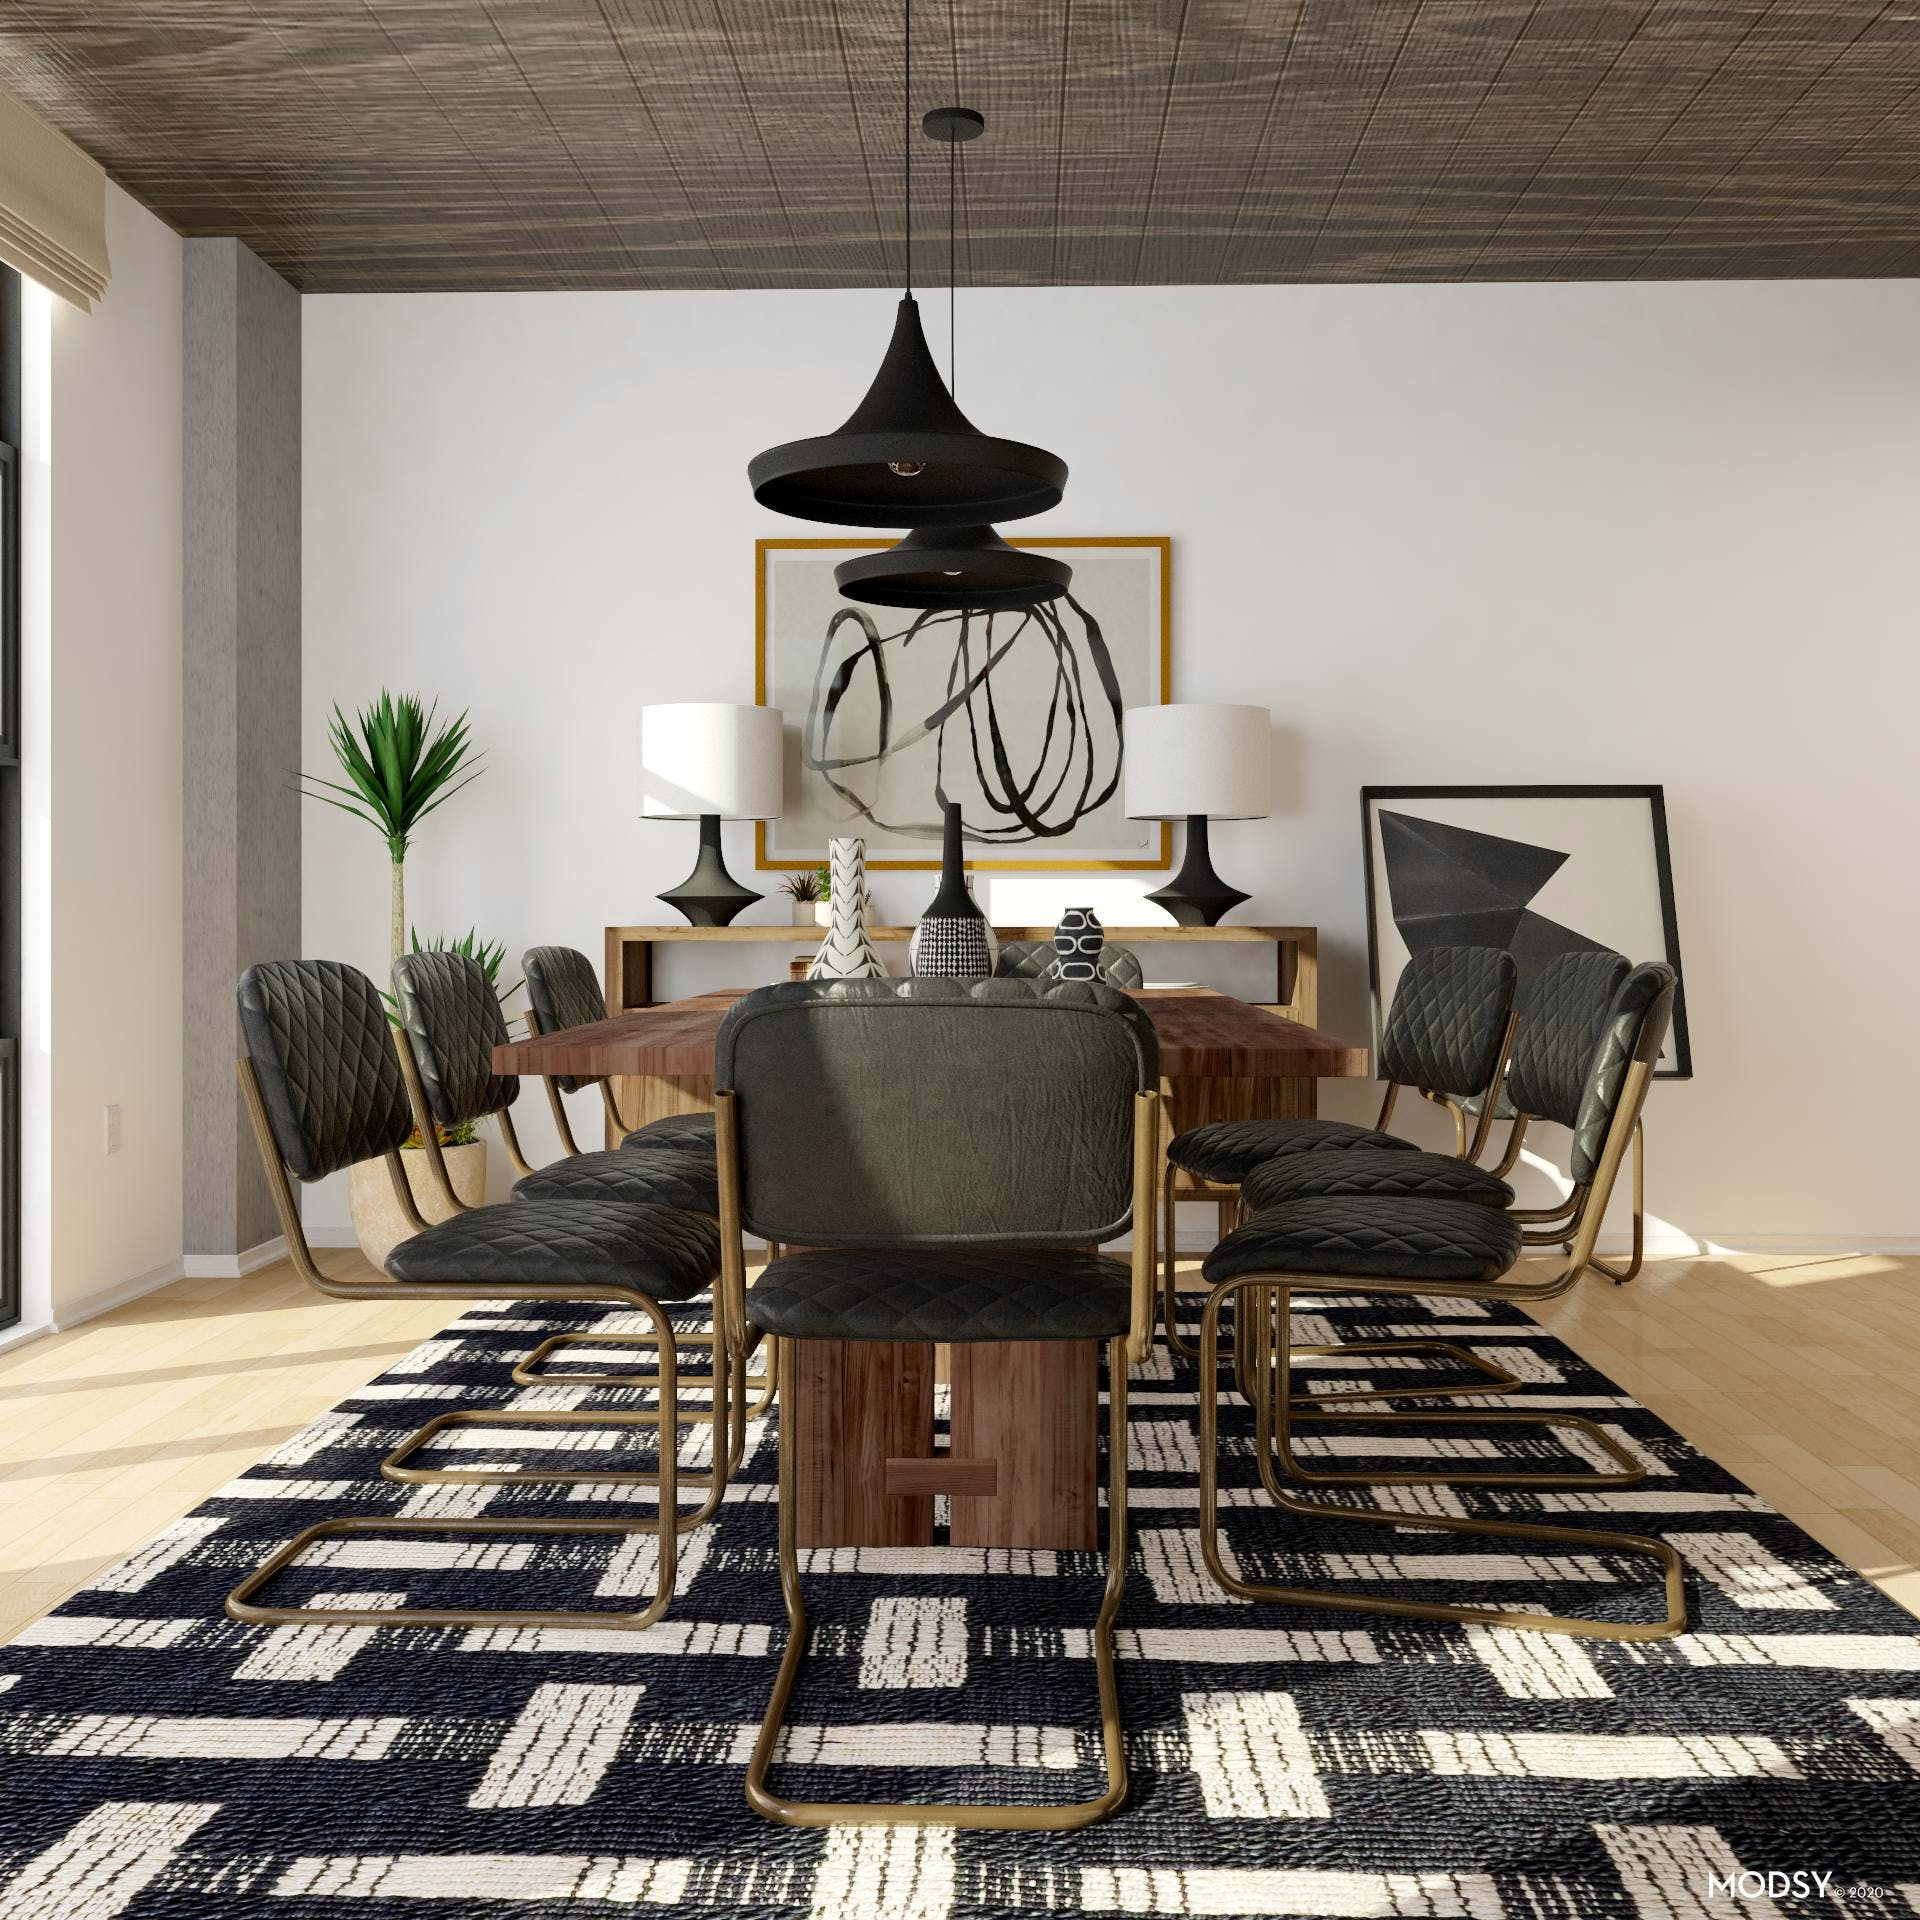 Dining Room Design: Minimal And Neutral